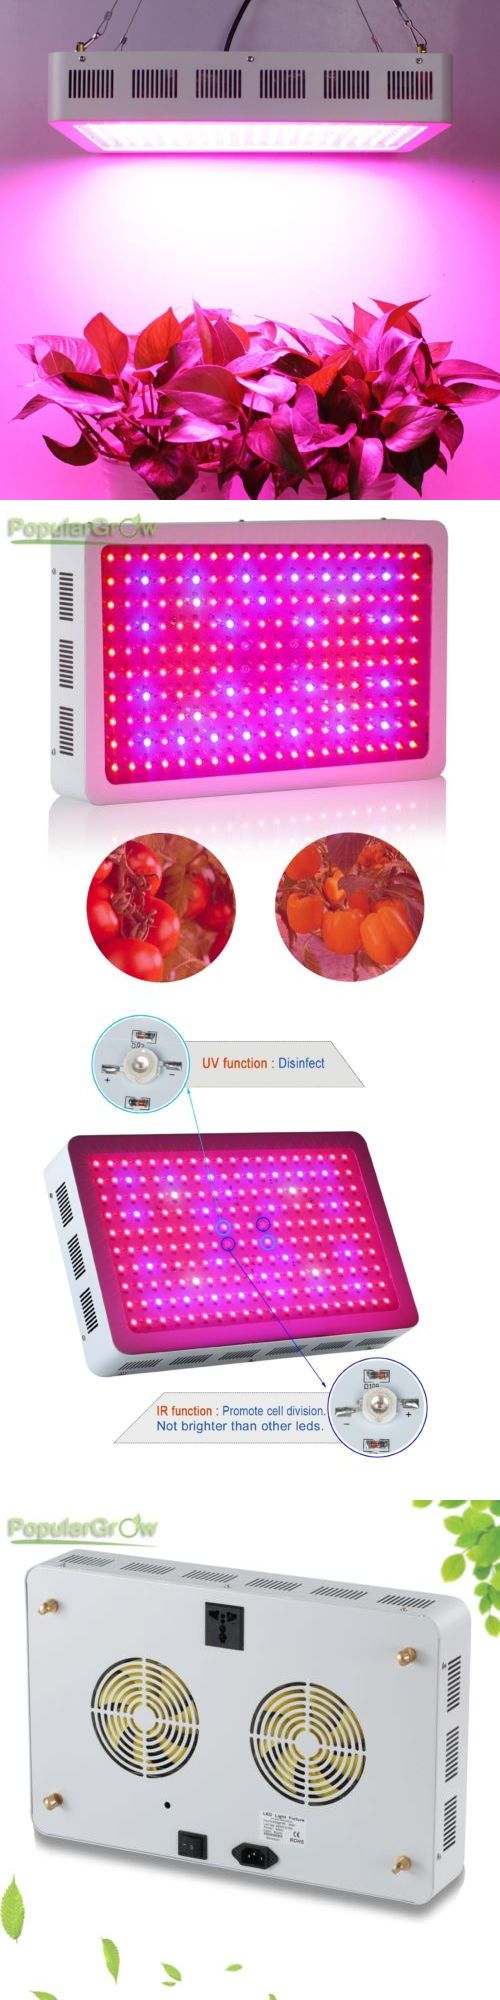 Grow Light Bulbs 178988: Populargrow 600W Full Spectrum Led Grow Light 3W Panel Hydroponic Plant Growth -> BUY IT NOW ONLY: $131.6 on eBay!